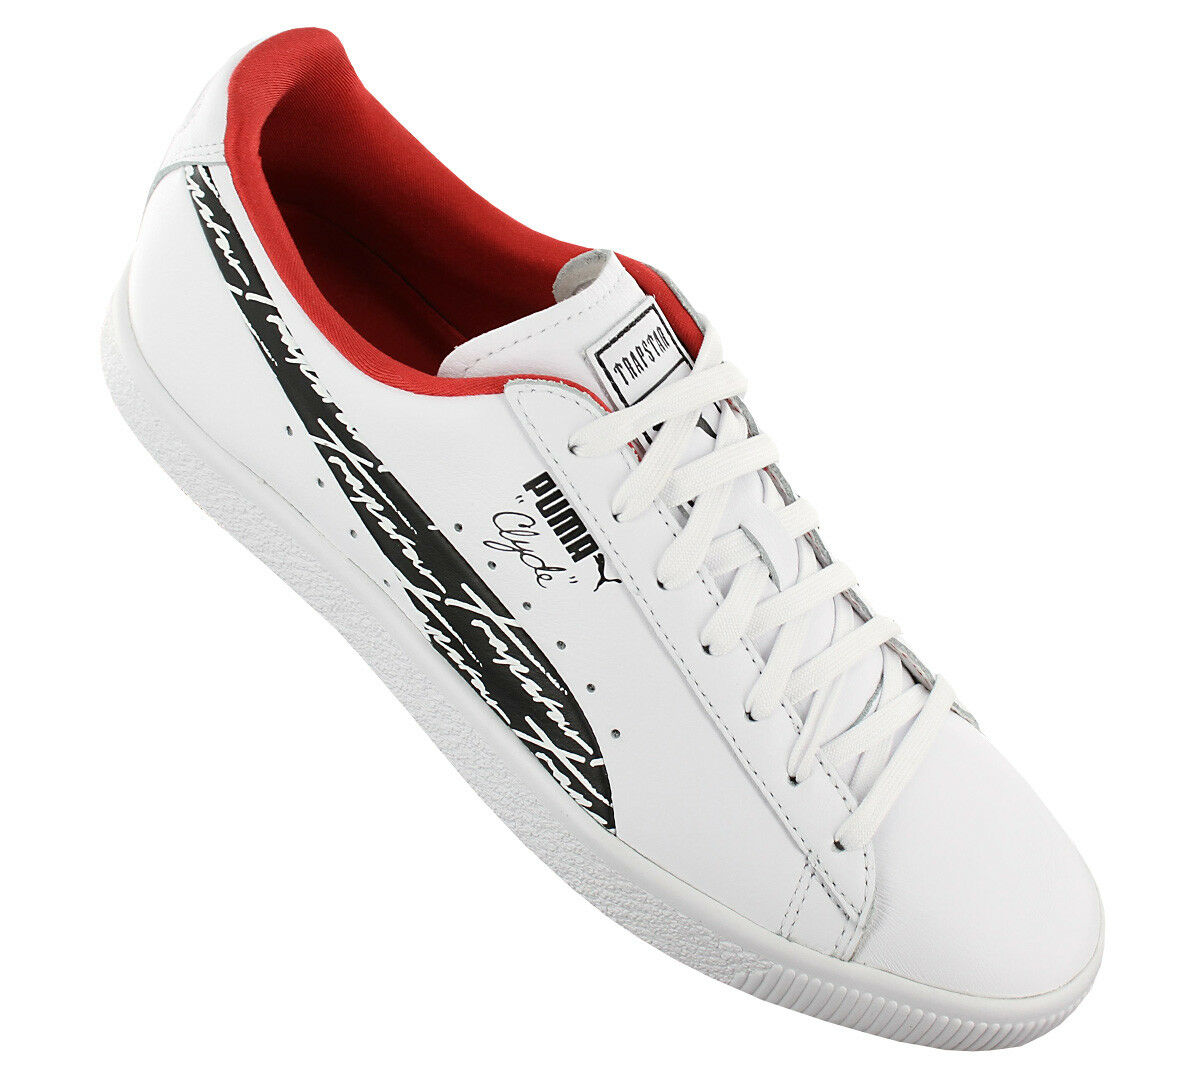 NEW Puma Clyde Trapstar 364712-02 Men''s shoes Trainers Sneakers SALE